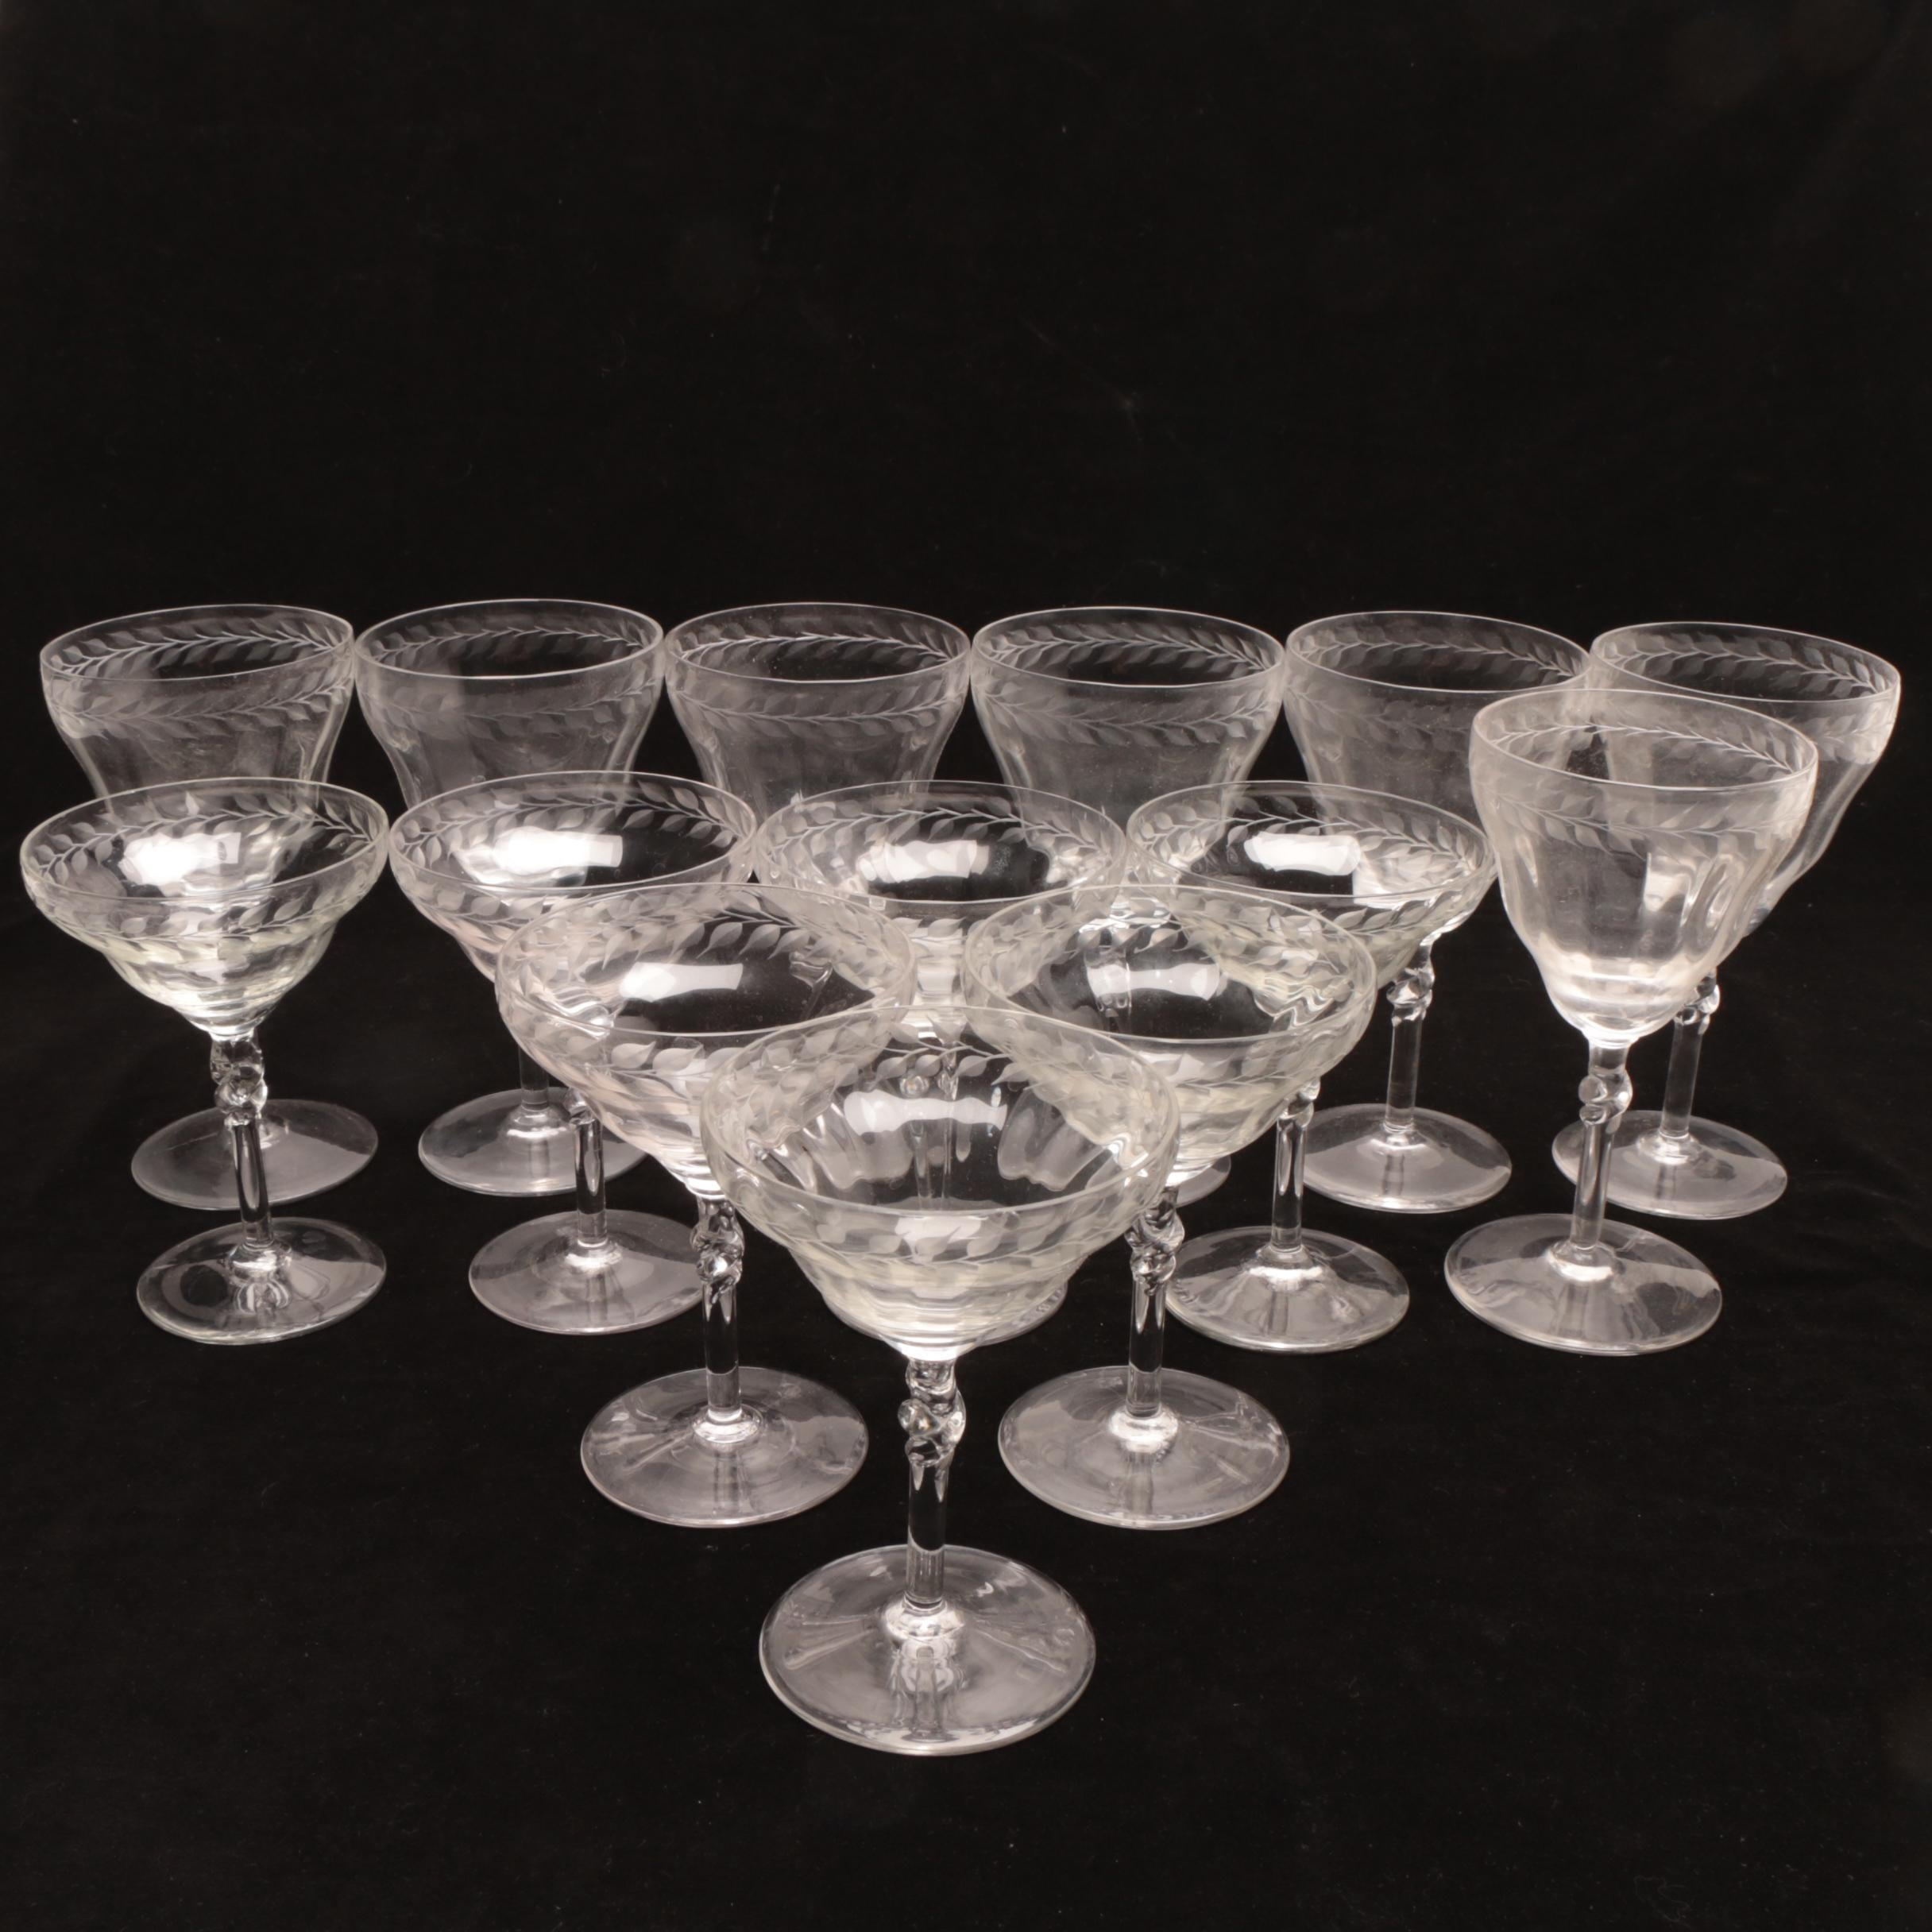 Etched Leaf Pattern Glass Stemware